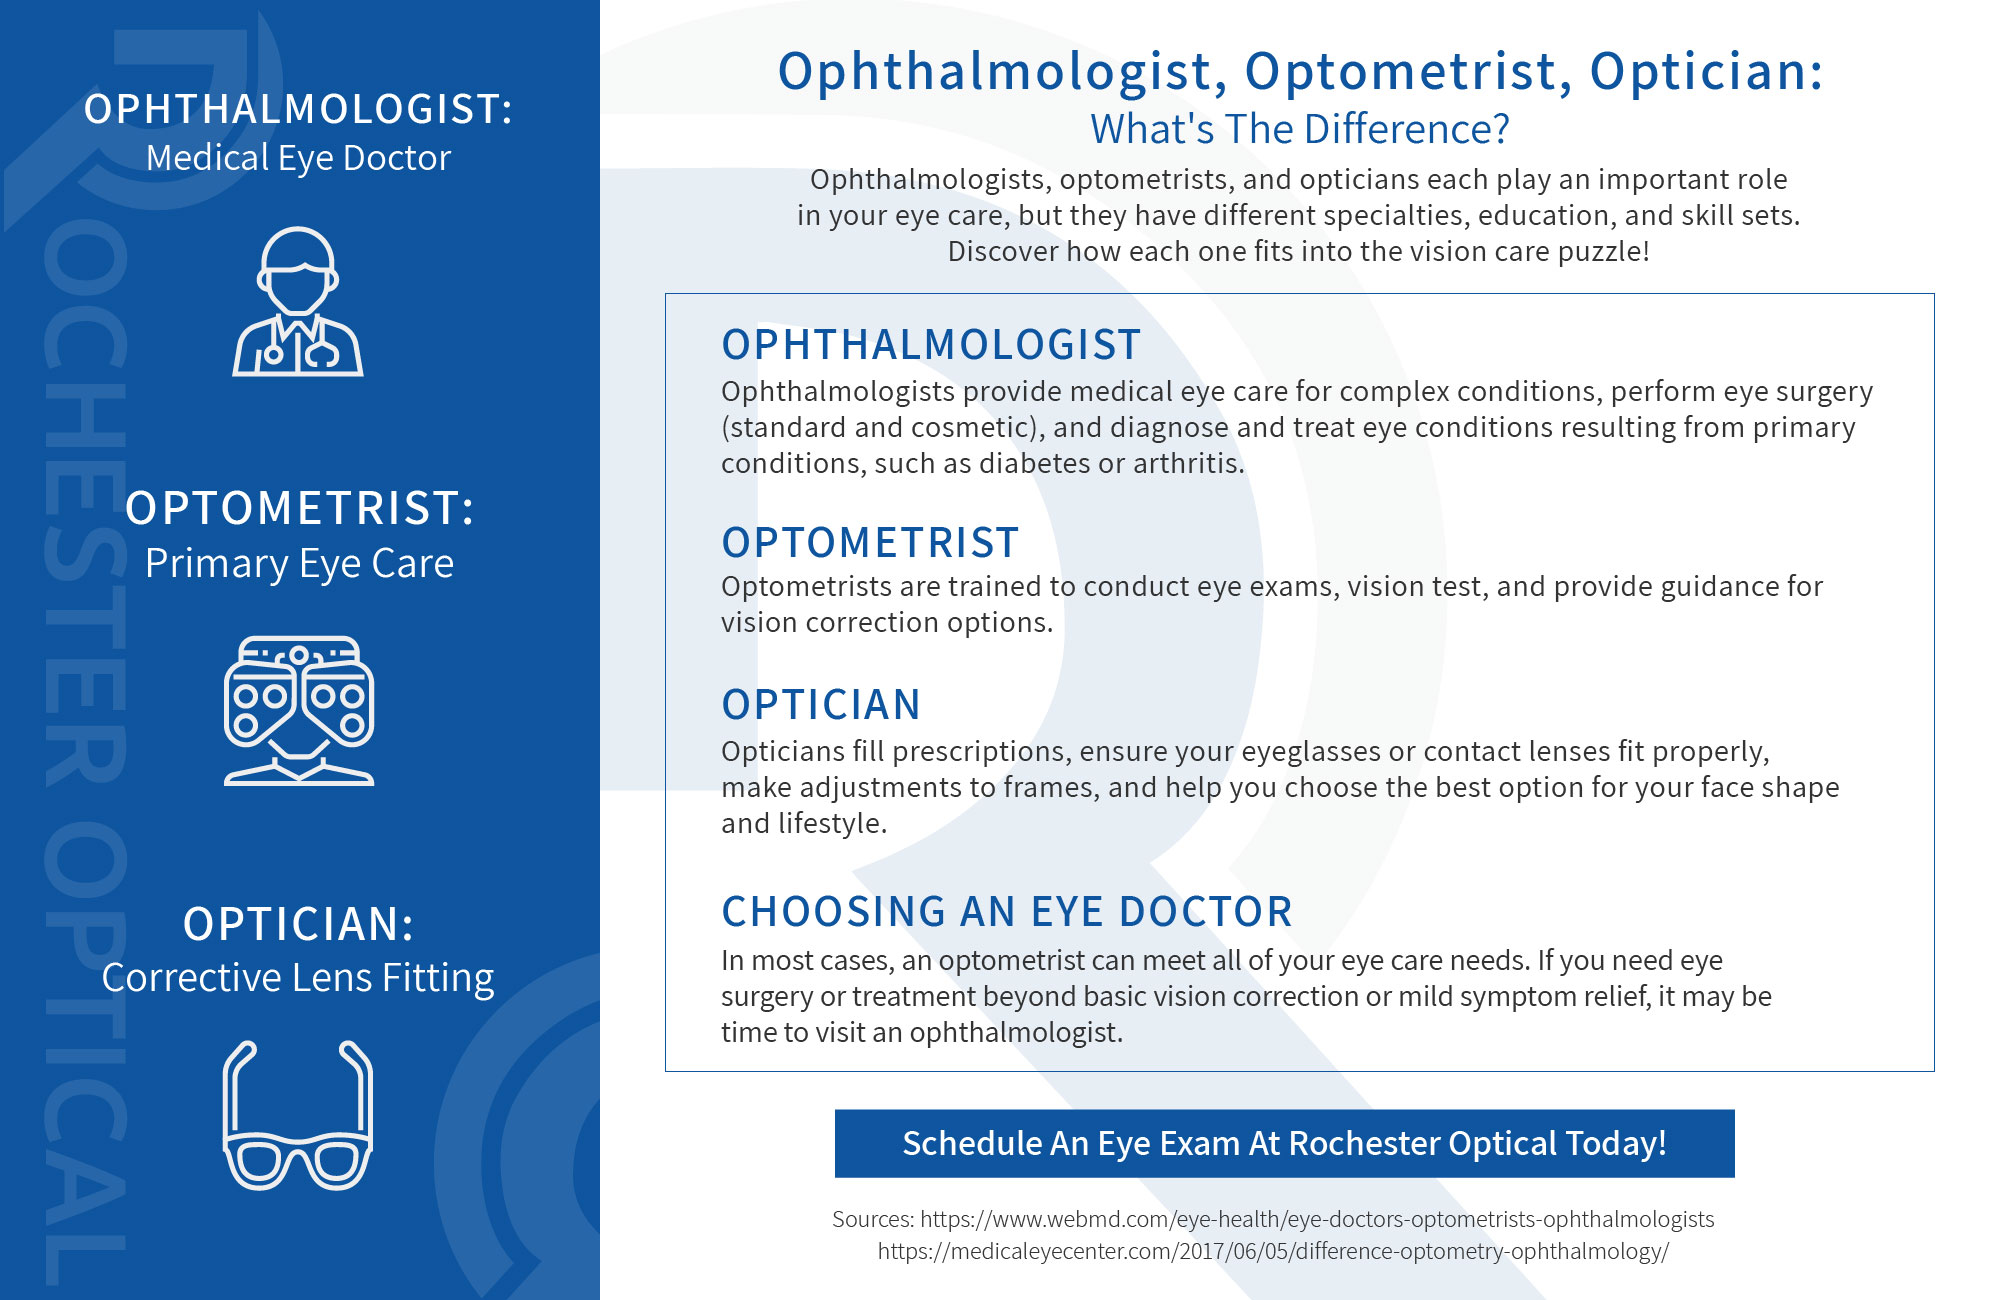 Infographic summarizing the differences between an optometrist, ophthalmologist, and optician